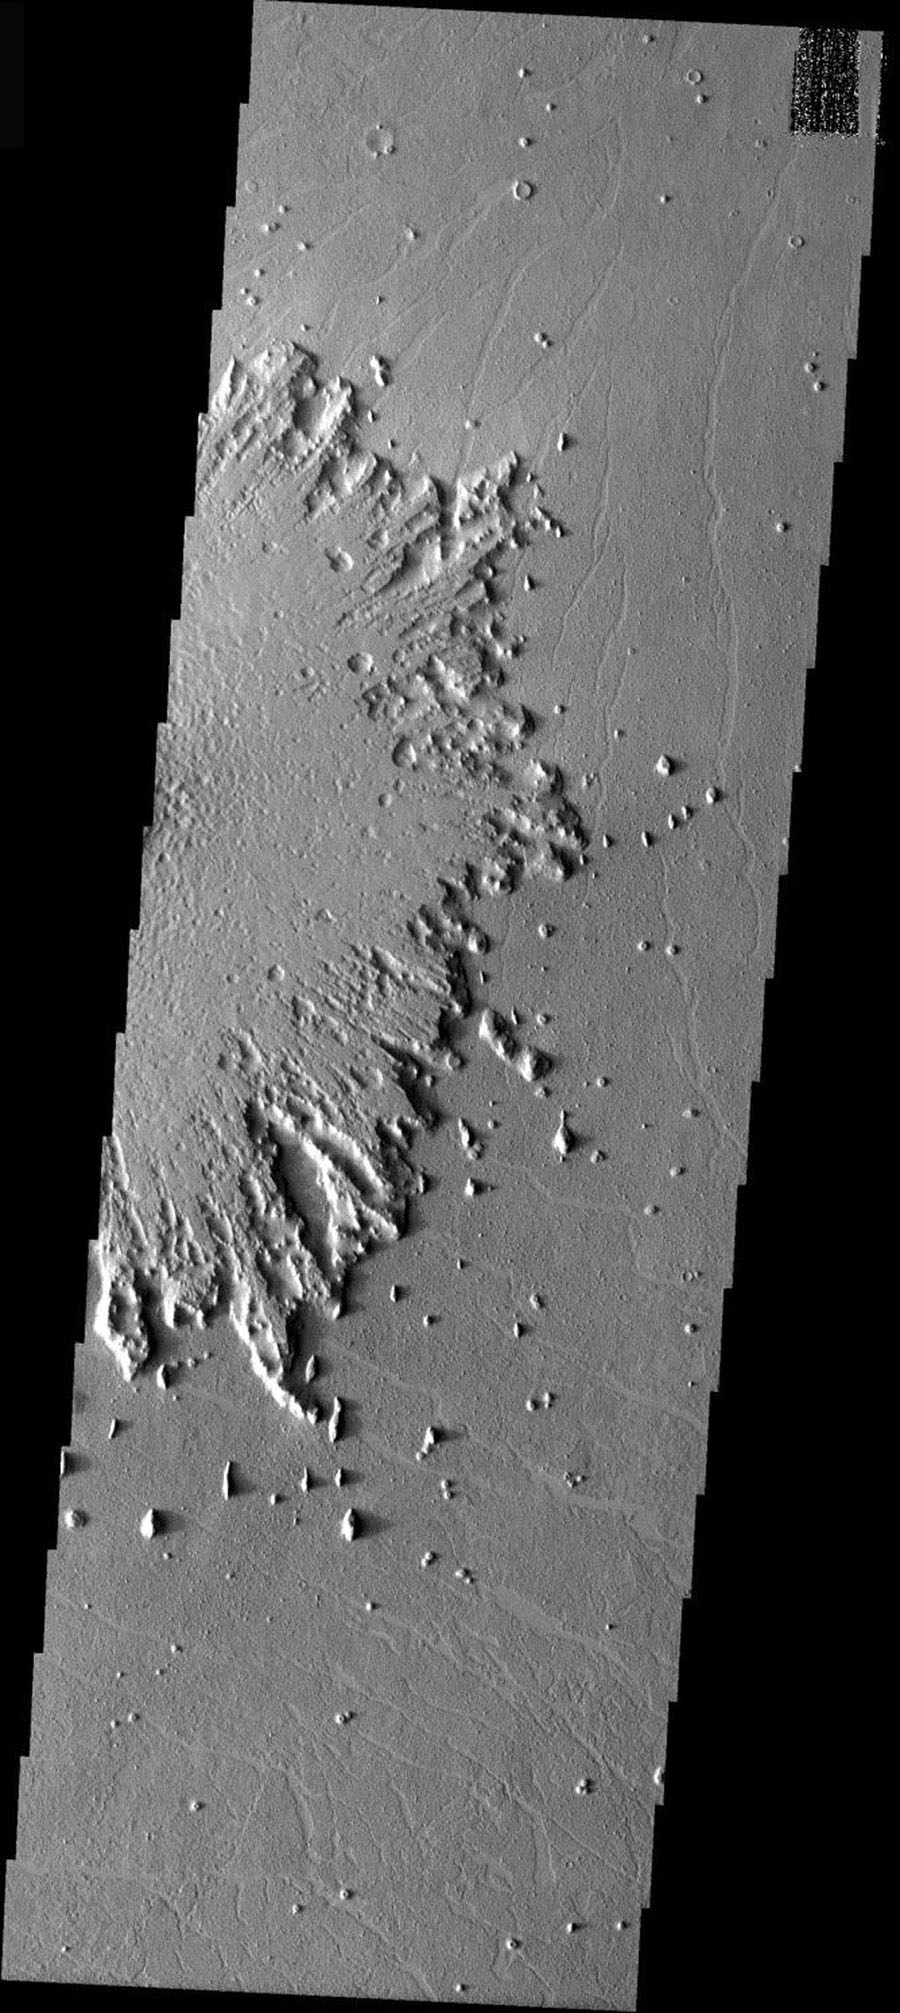 This image from NASA's Mars Odyssey shows ejecta surrounding a crater on Mars has undergone significant erosion by the wind. The wind has stripped the surface features from the ejecta and has started to winnow away the ejecta blanket.